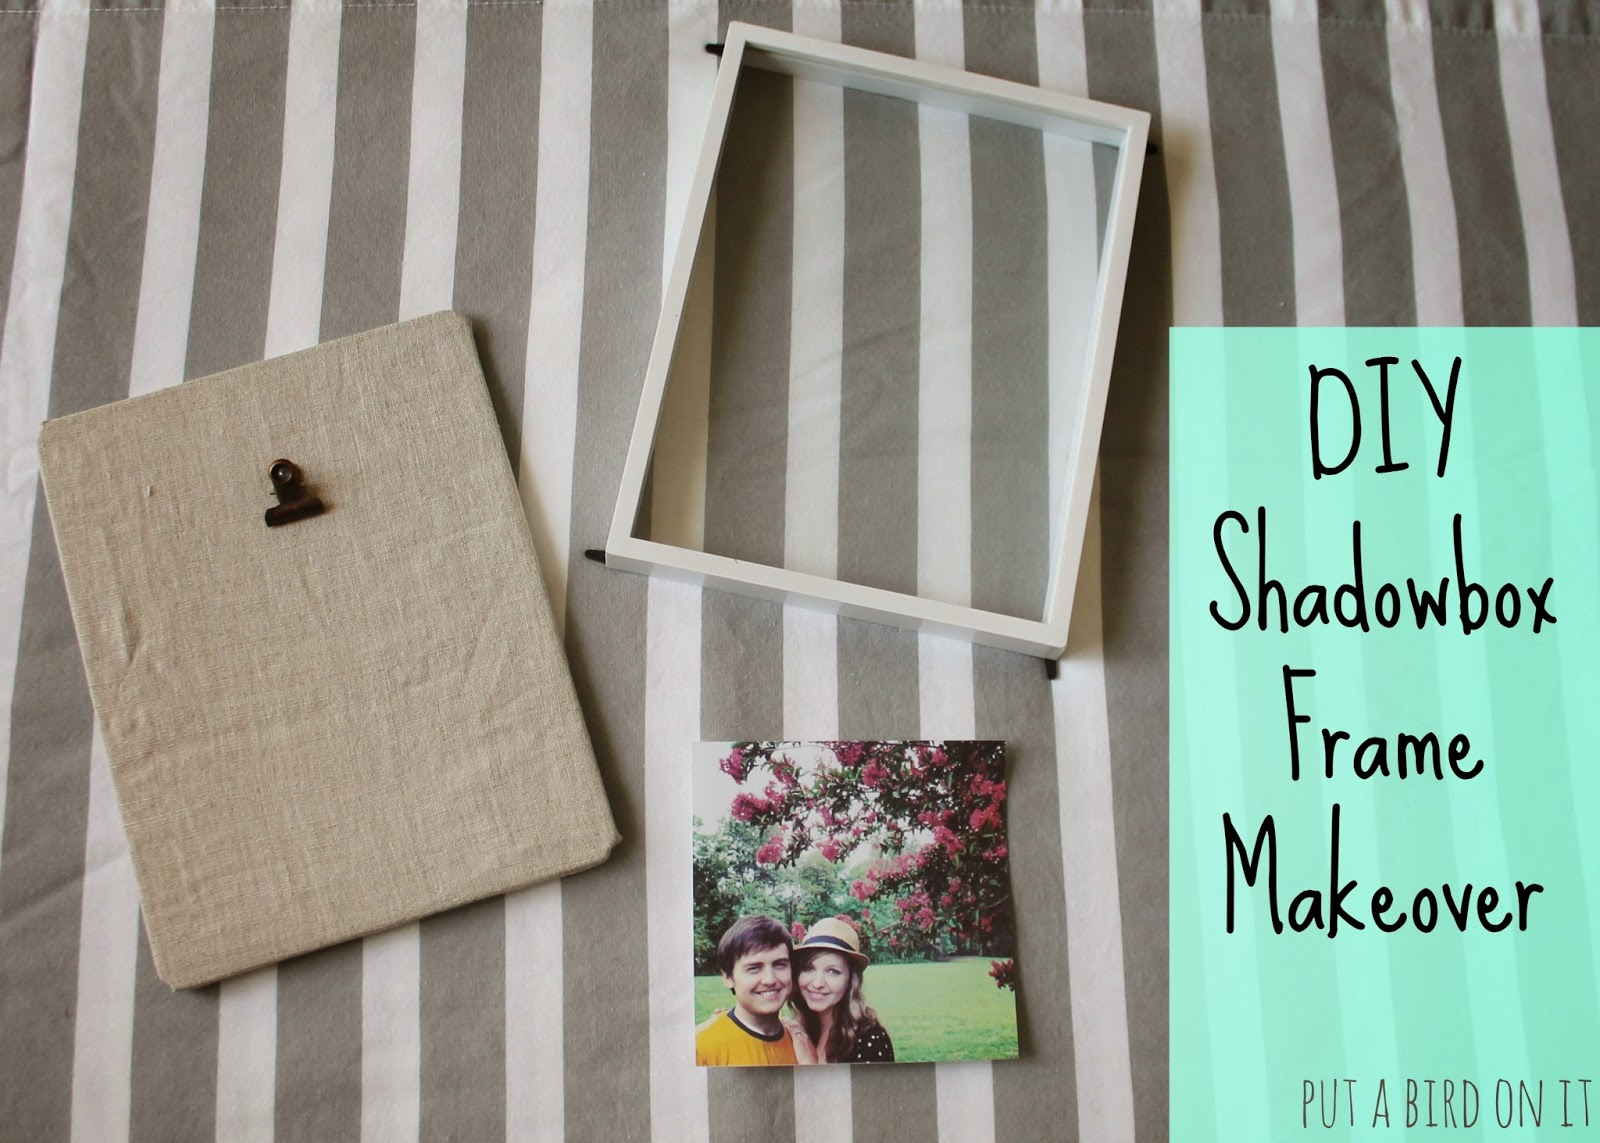 DIY Shadow Box Frame Makeover: Guest Post from Daniela @ Put A Bird ...